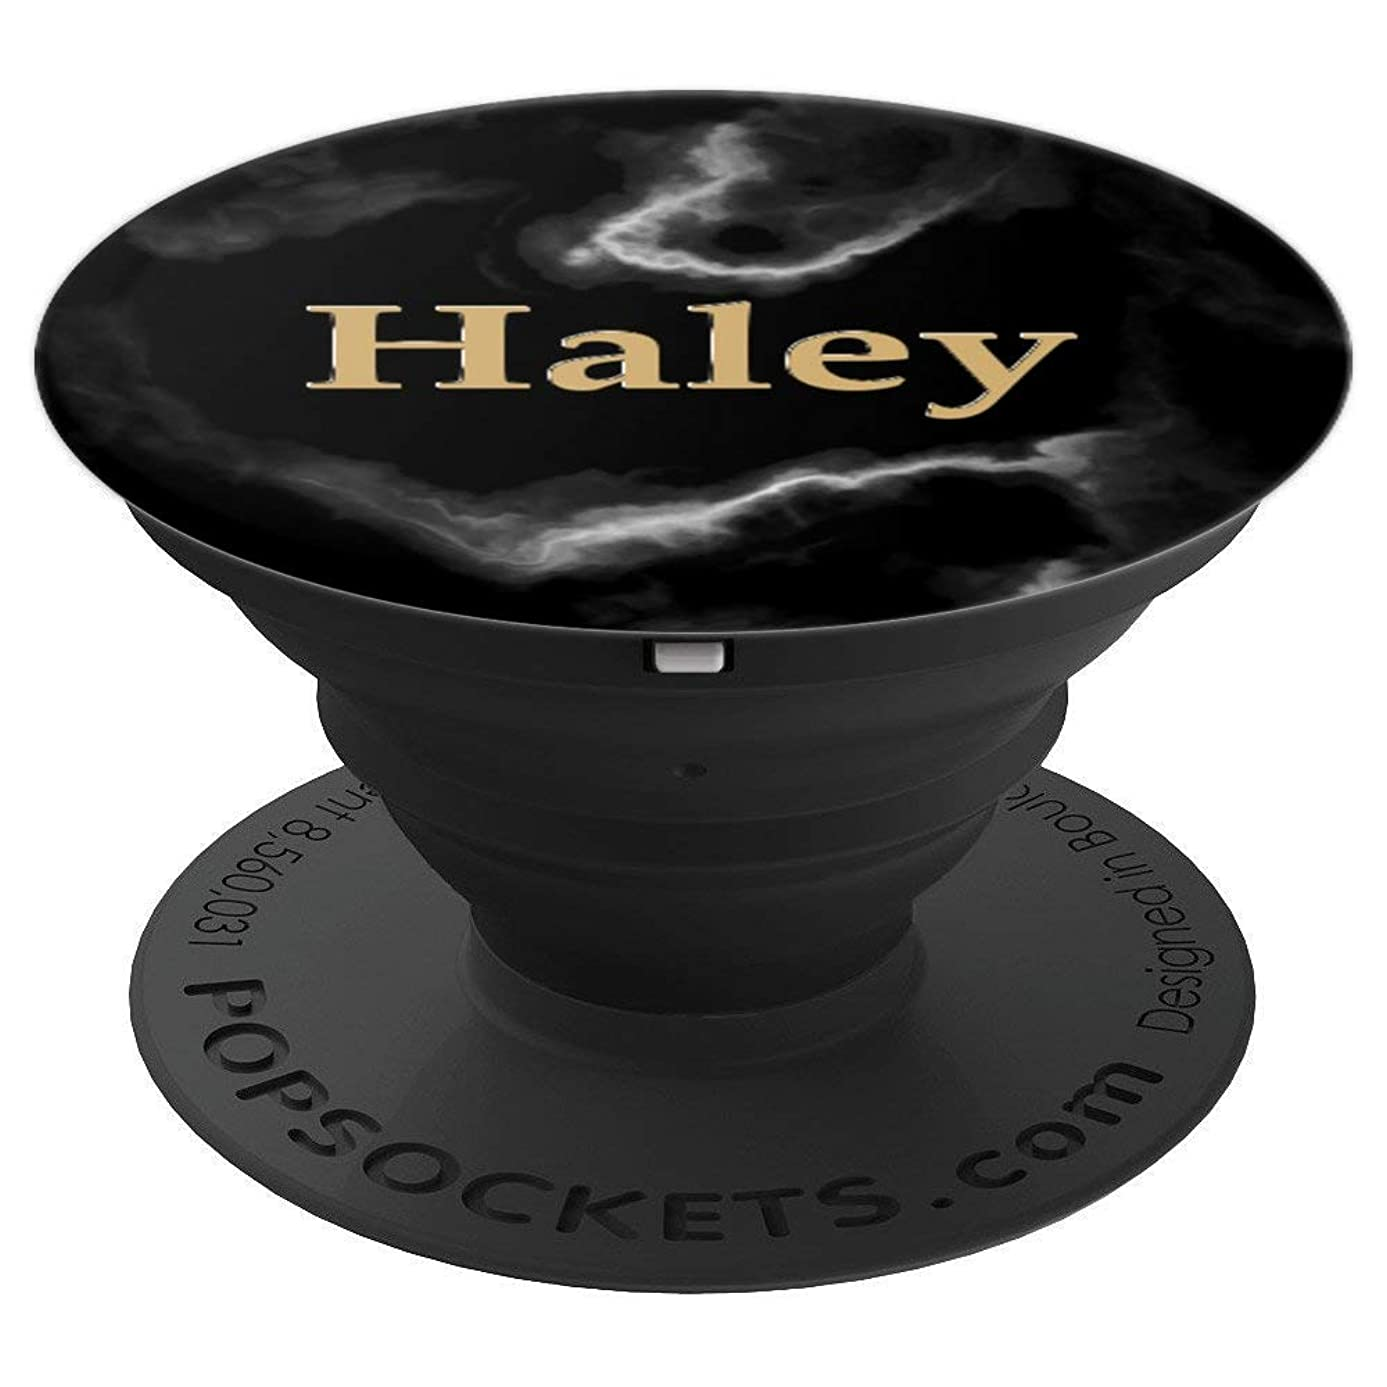 Haley First Name Elegant And Chic Smoke Design - PopSockets Grip and Stand for Phones and Tablets